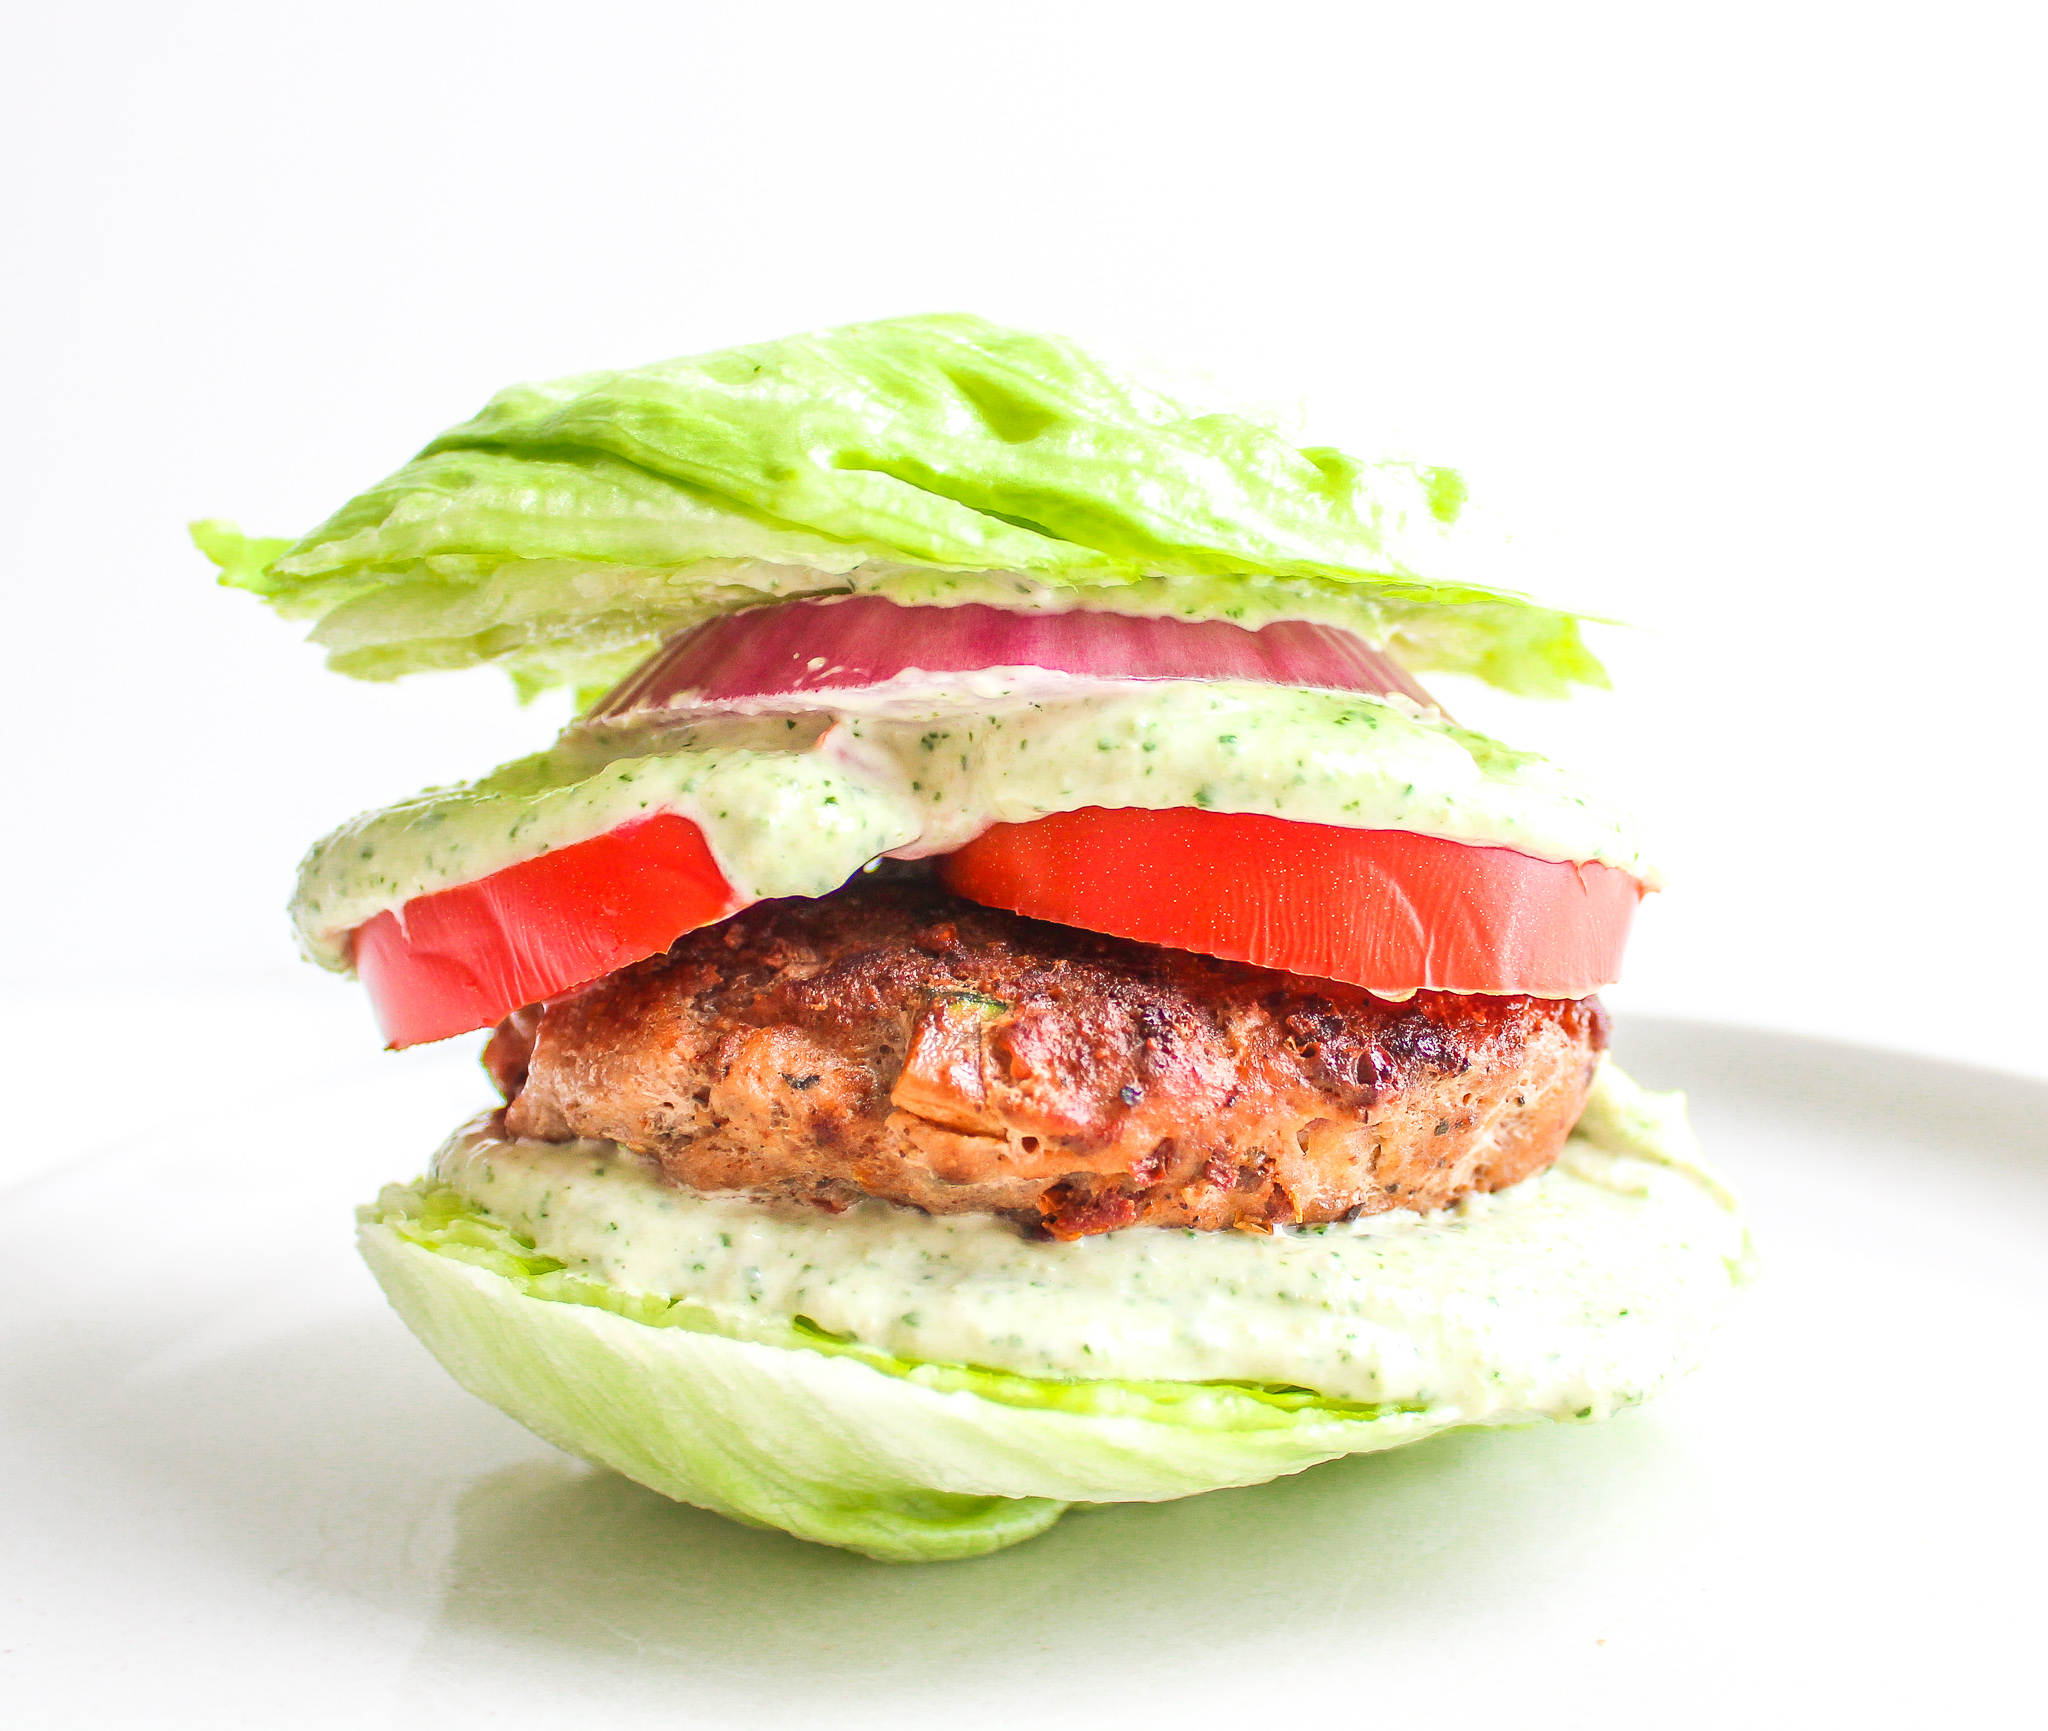 Greek Turkey Burger on a lettuce bun with thick tomato slices, red onion and pesto aioli